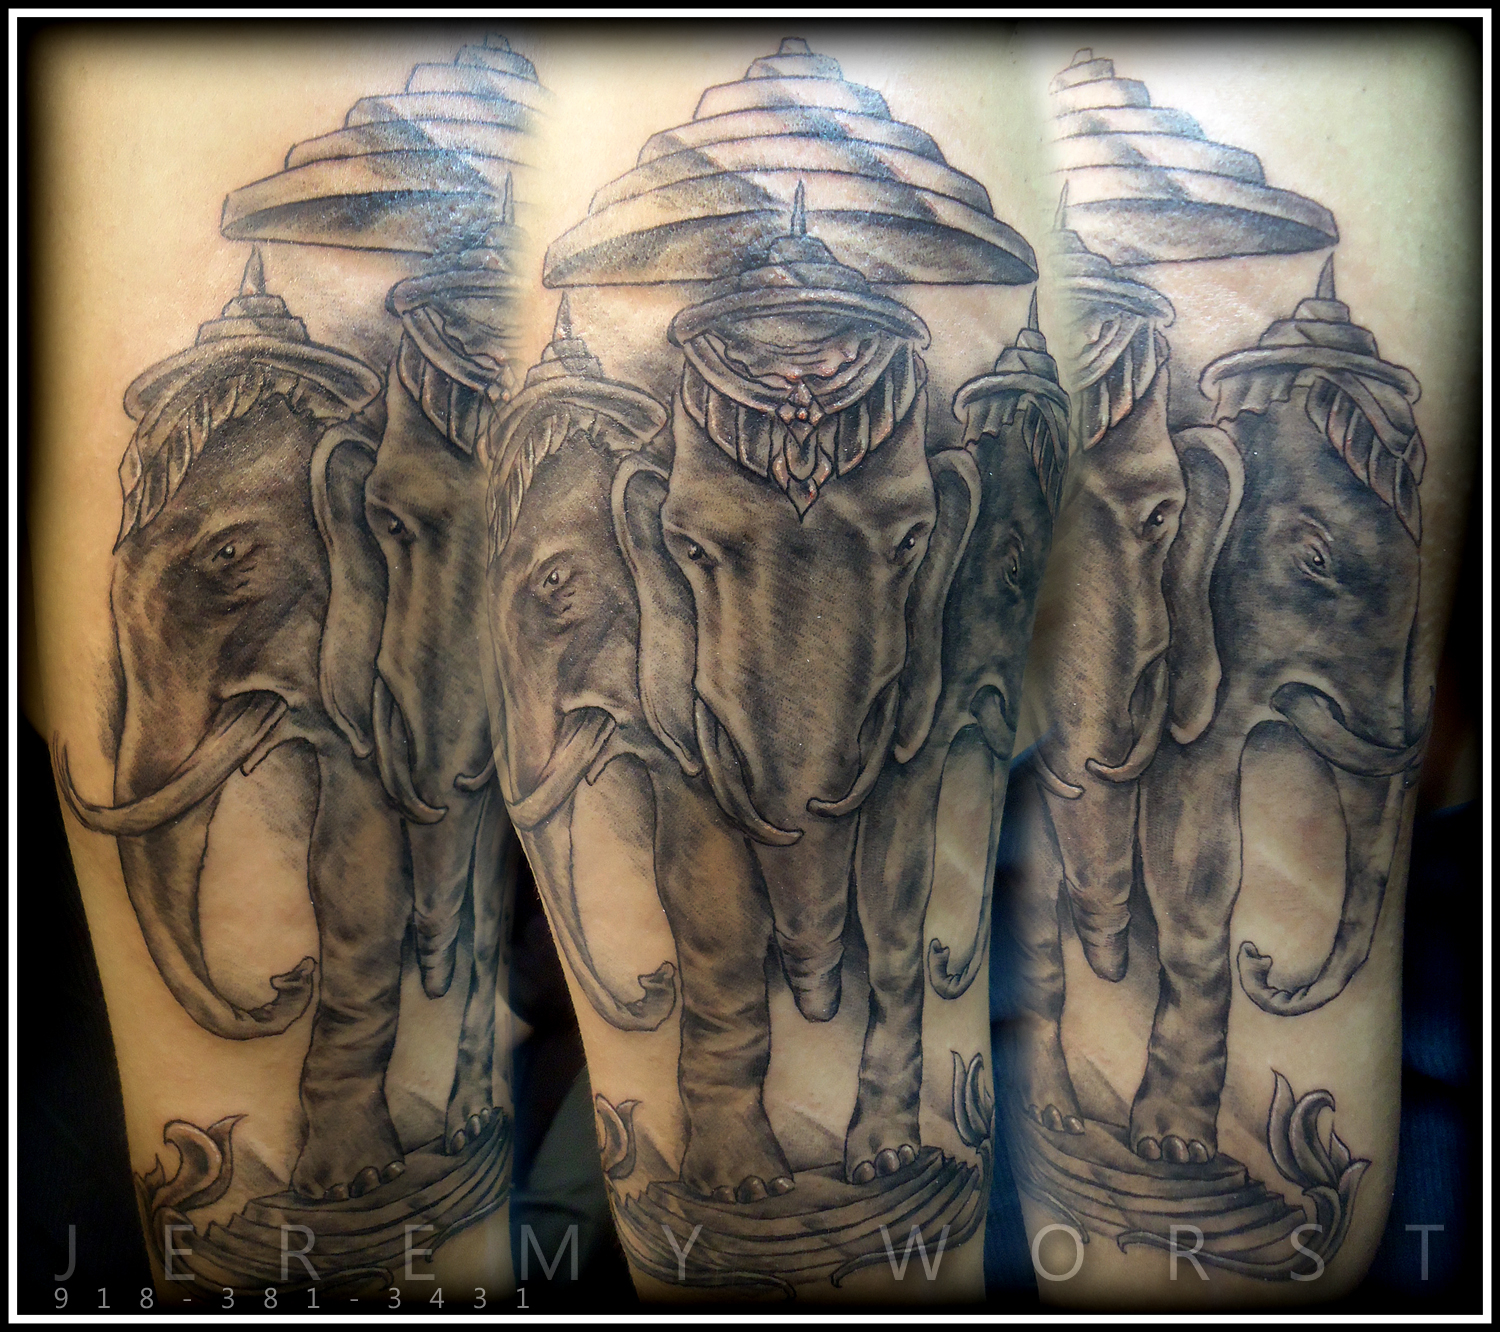 jeremy worst jeremy worst forearm tattoo session dragon koi painting art khmer laos sketch. Black Bedroom Furniture Sets. Home Design Ideas